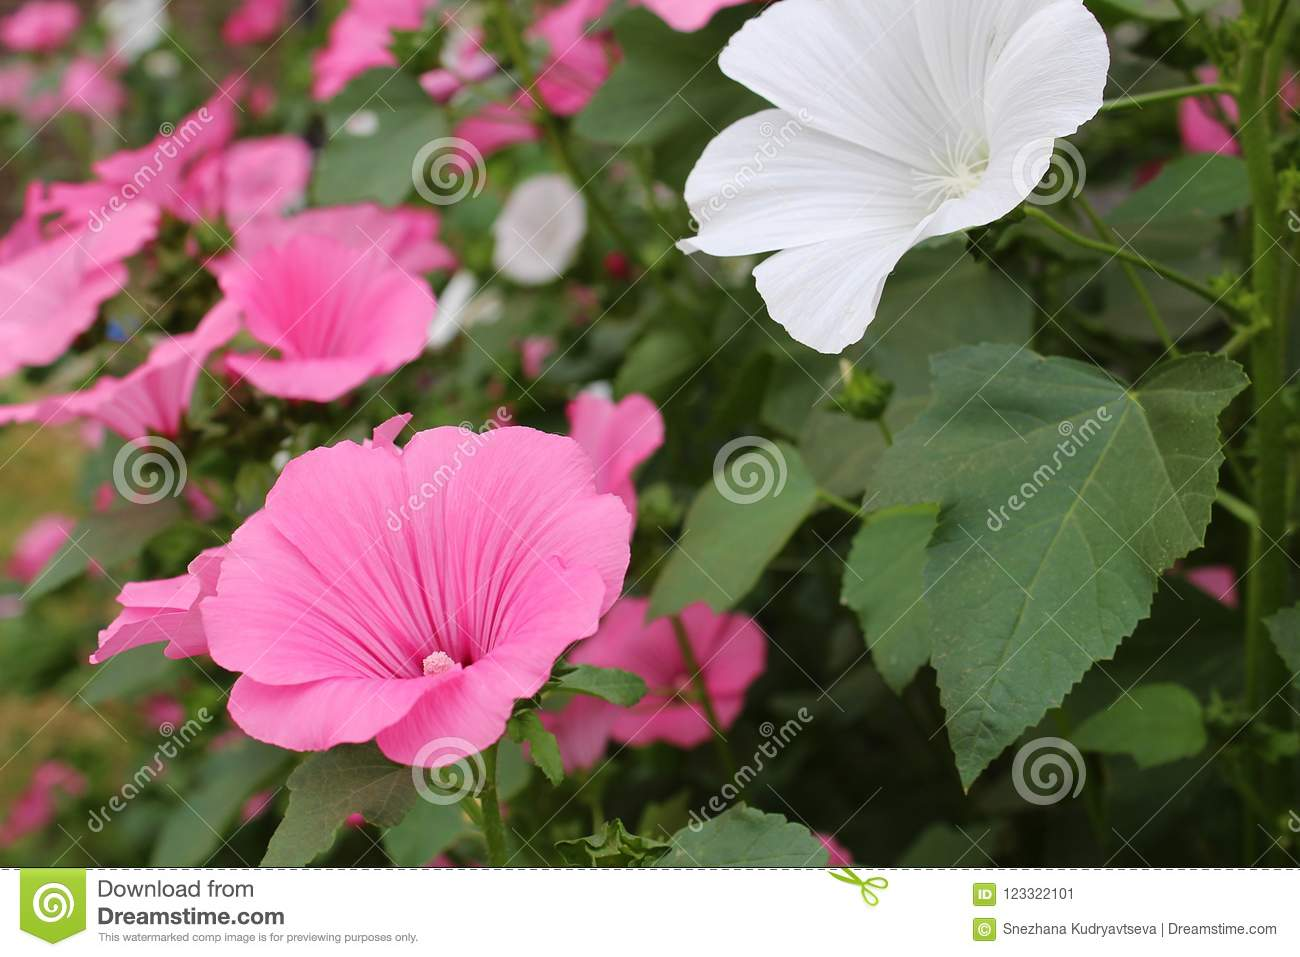 Pink Flowers Under The Name Of The Lavaera Blossomed On The